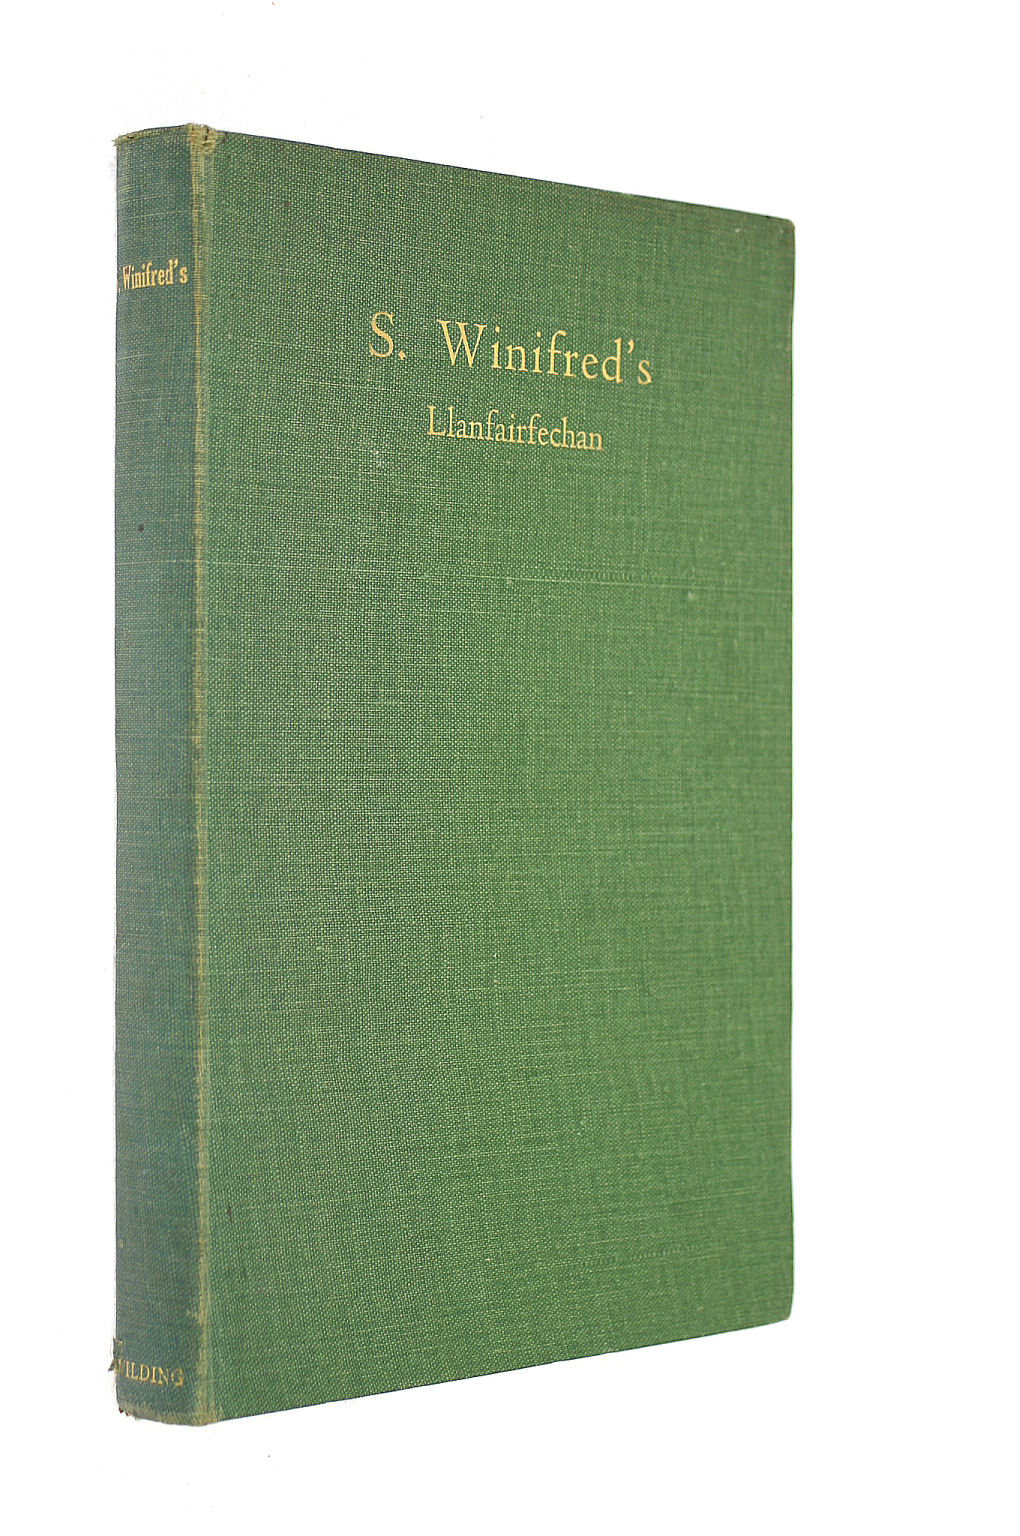 Image for S. Winifred's, Llanfairfechan: The Story Of Fifty Years, 1887-1937